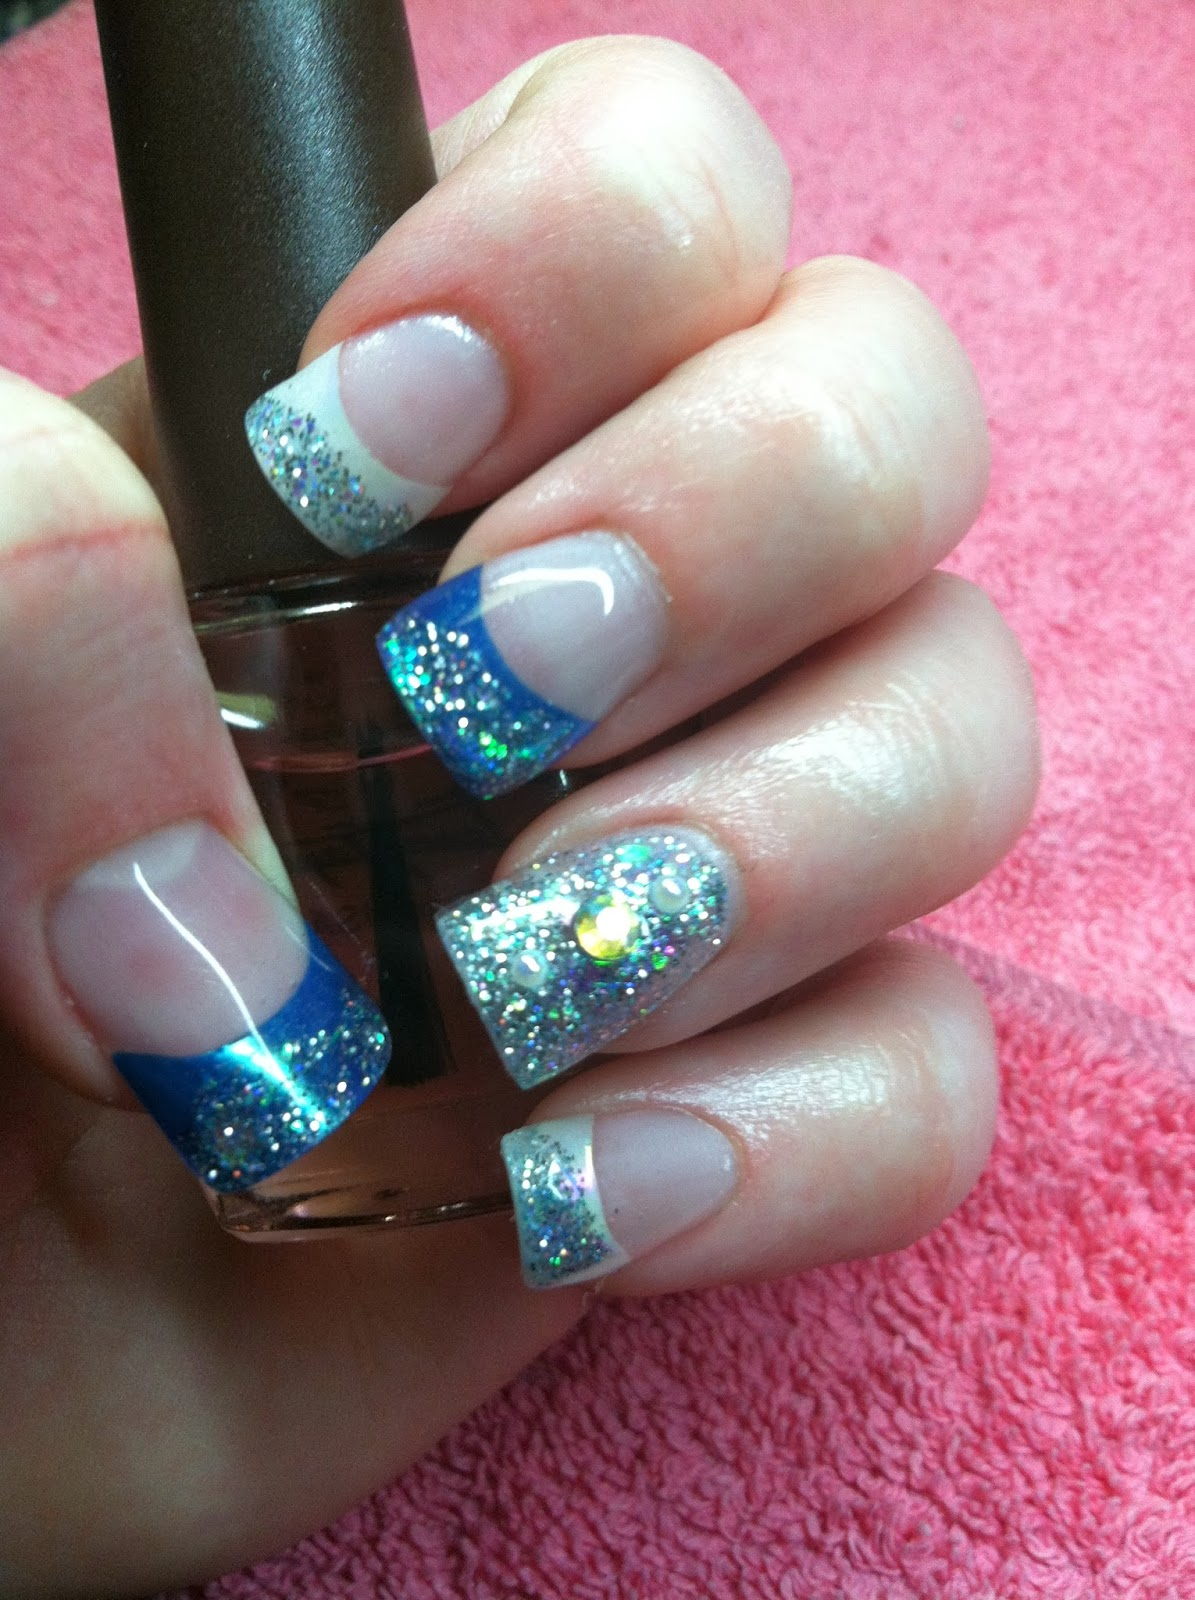 15 Acrylic Winter Nail Designs Images Winter Acrylic Nails Winter